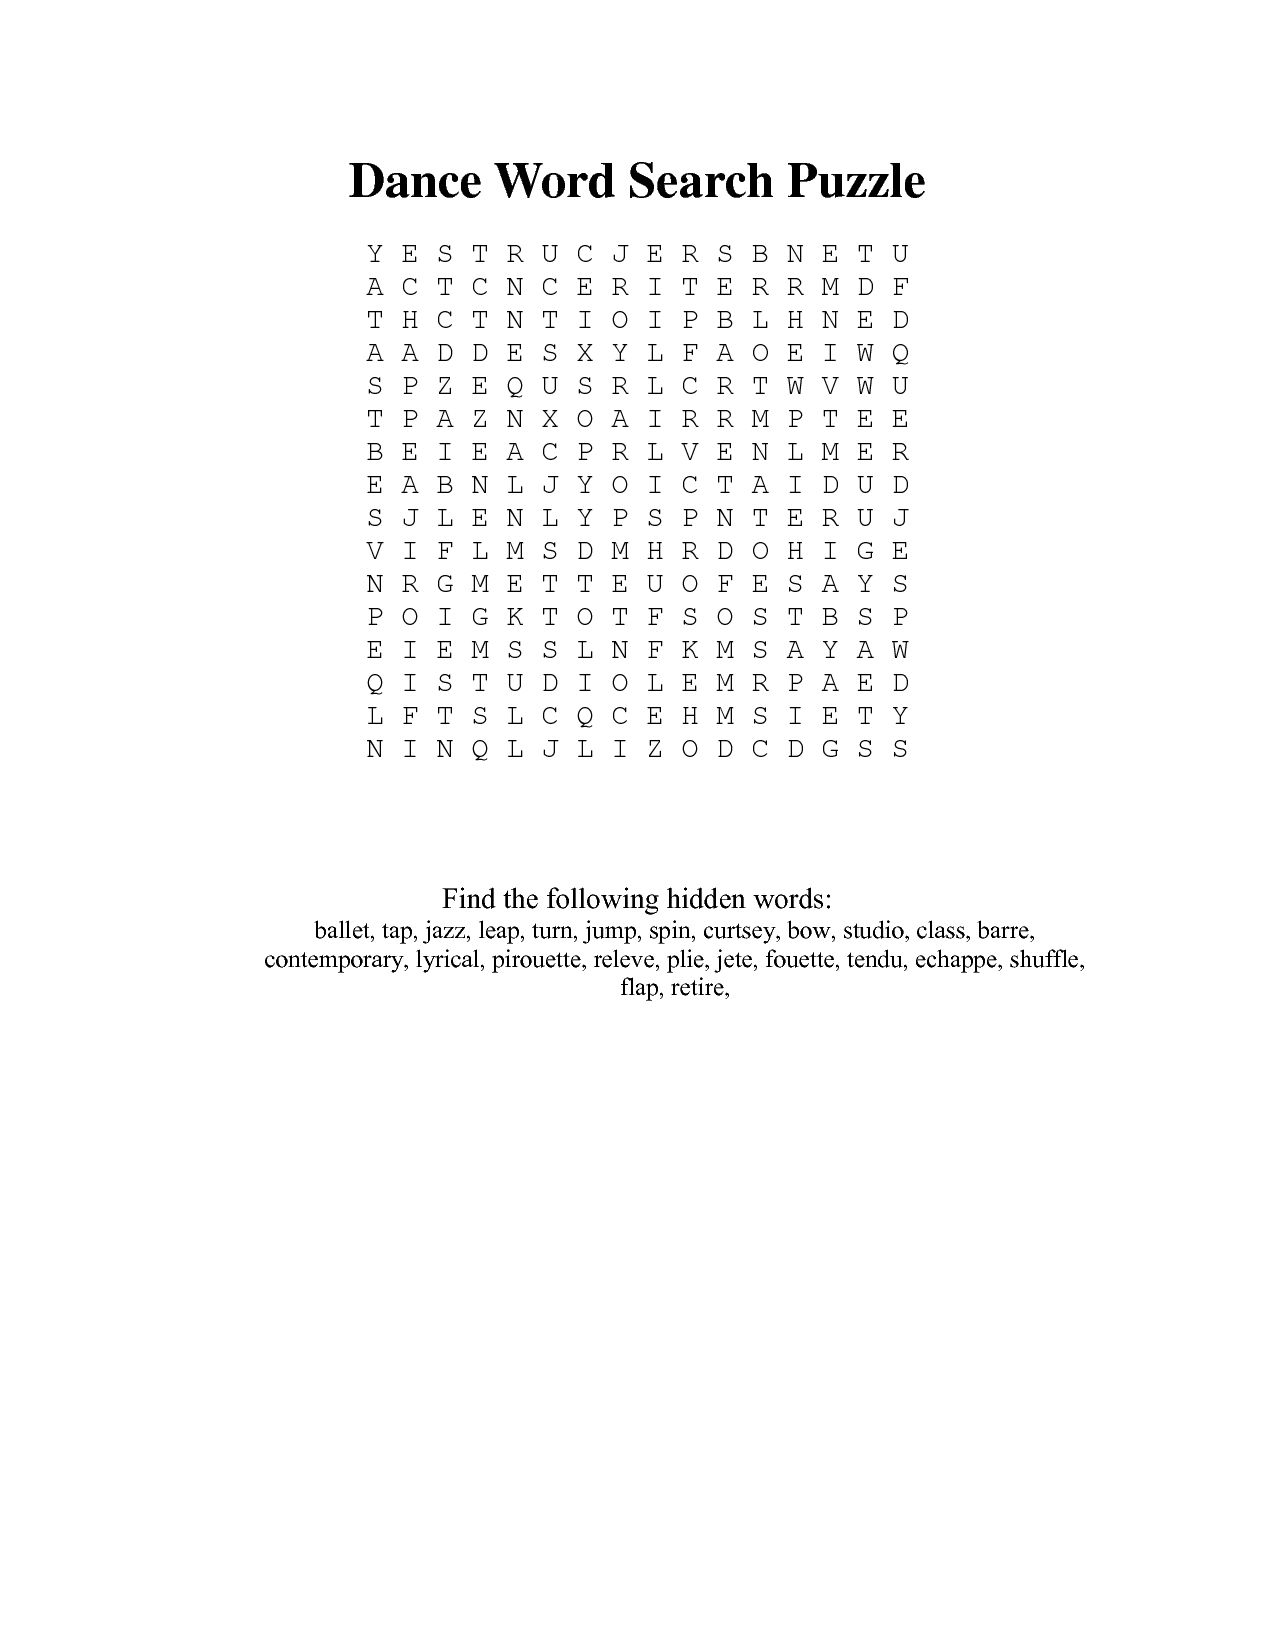 Dance Word Search Printable any and All Word searches